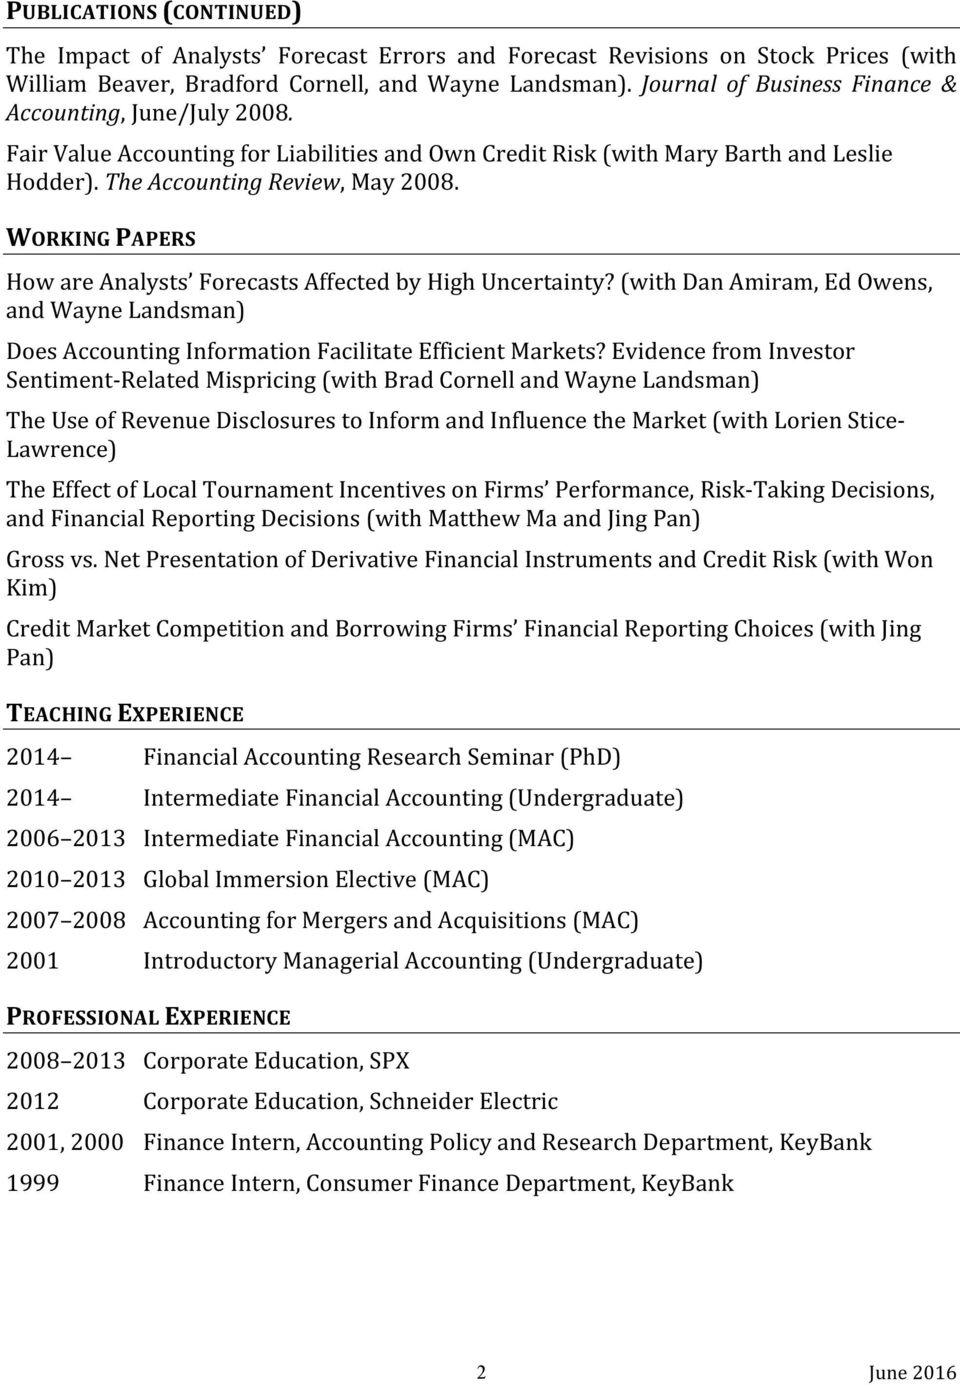 WORKING PAPERS How are Analysts Forecasts Affected by High Uncertainty? (with Dan Amiram, Ed Owens, and Wayne Landsman) Does Accounting Information Facilitate Efficient Markets?